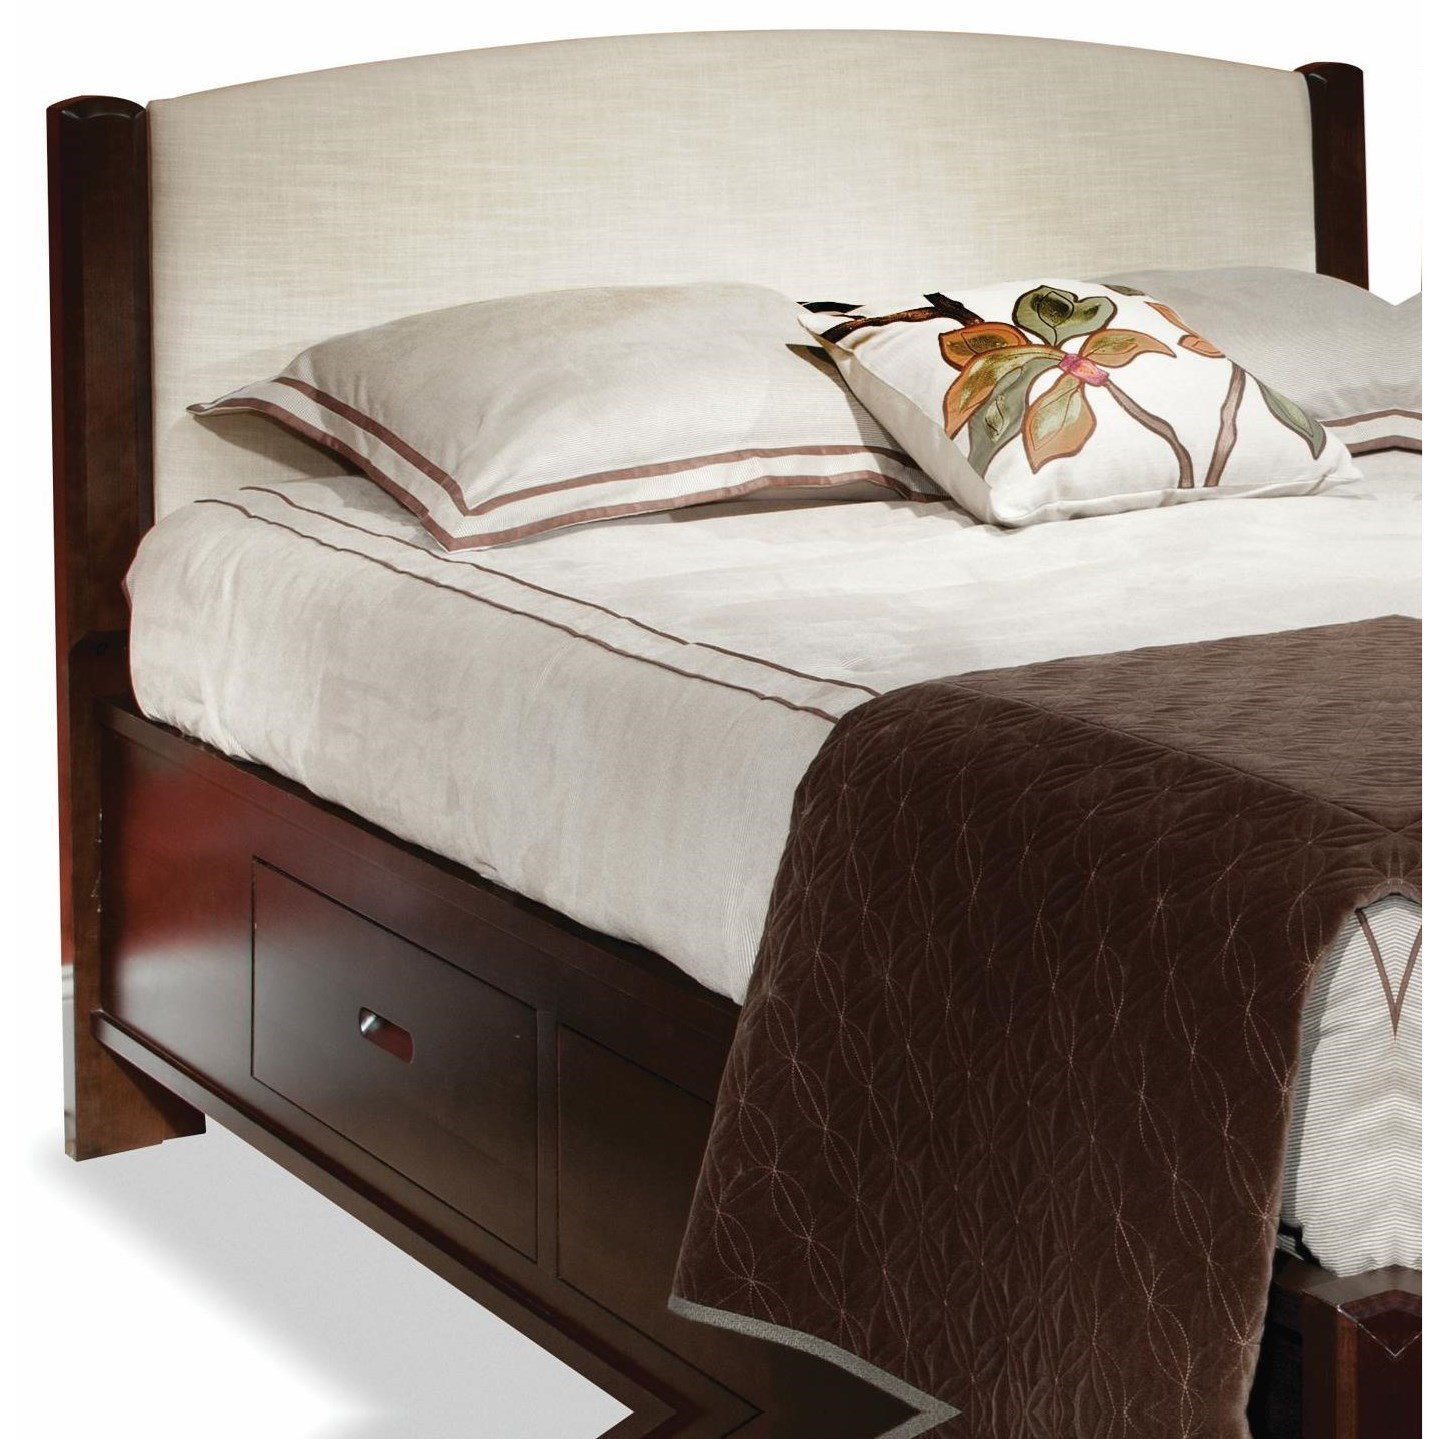 Beds Queen Fabric Panel Headboard by perfectbalance by Durham Furniture at Stoney Creek Furniture